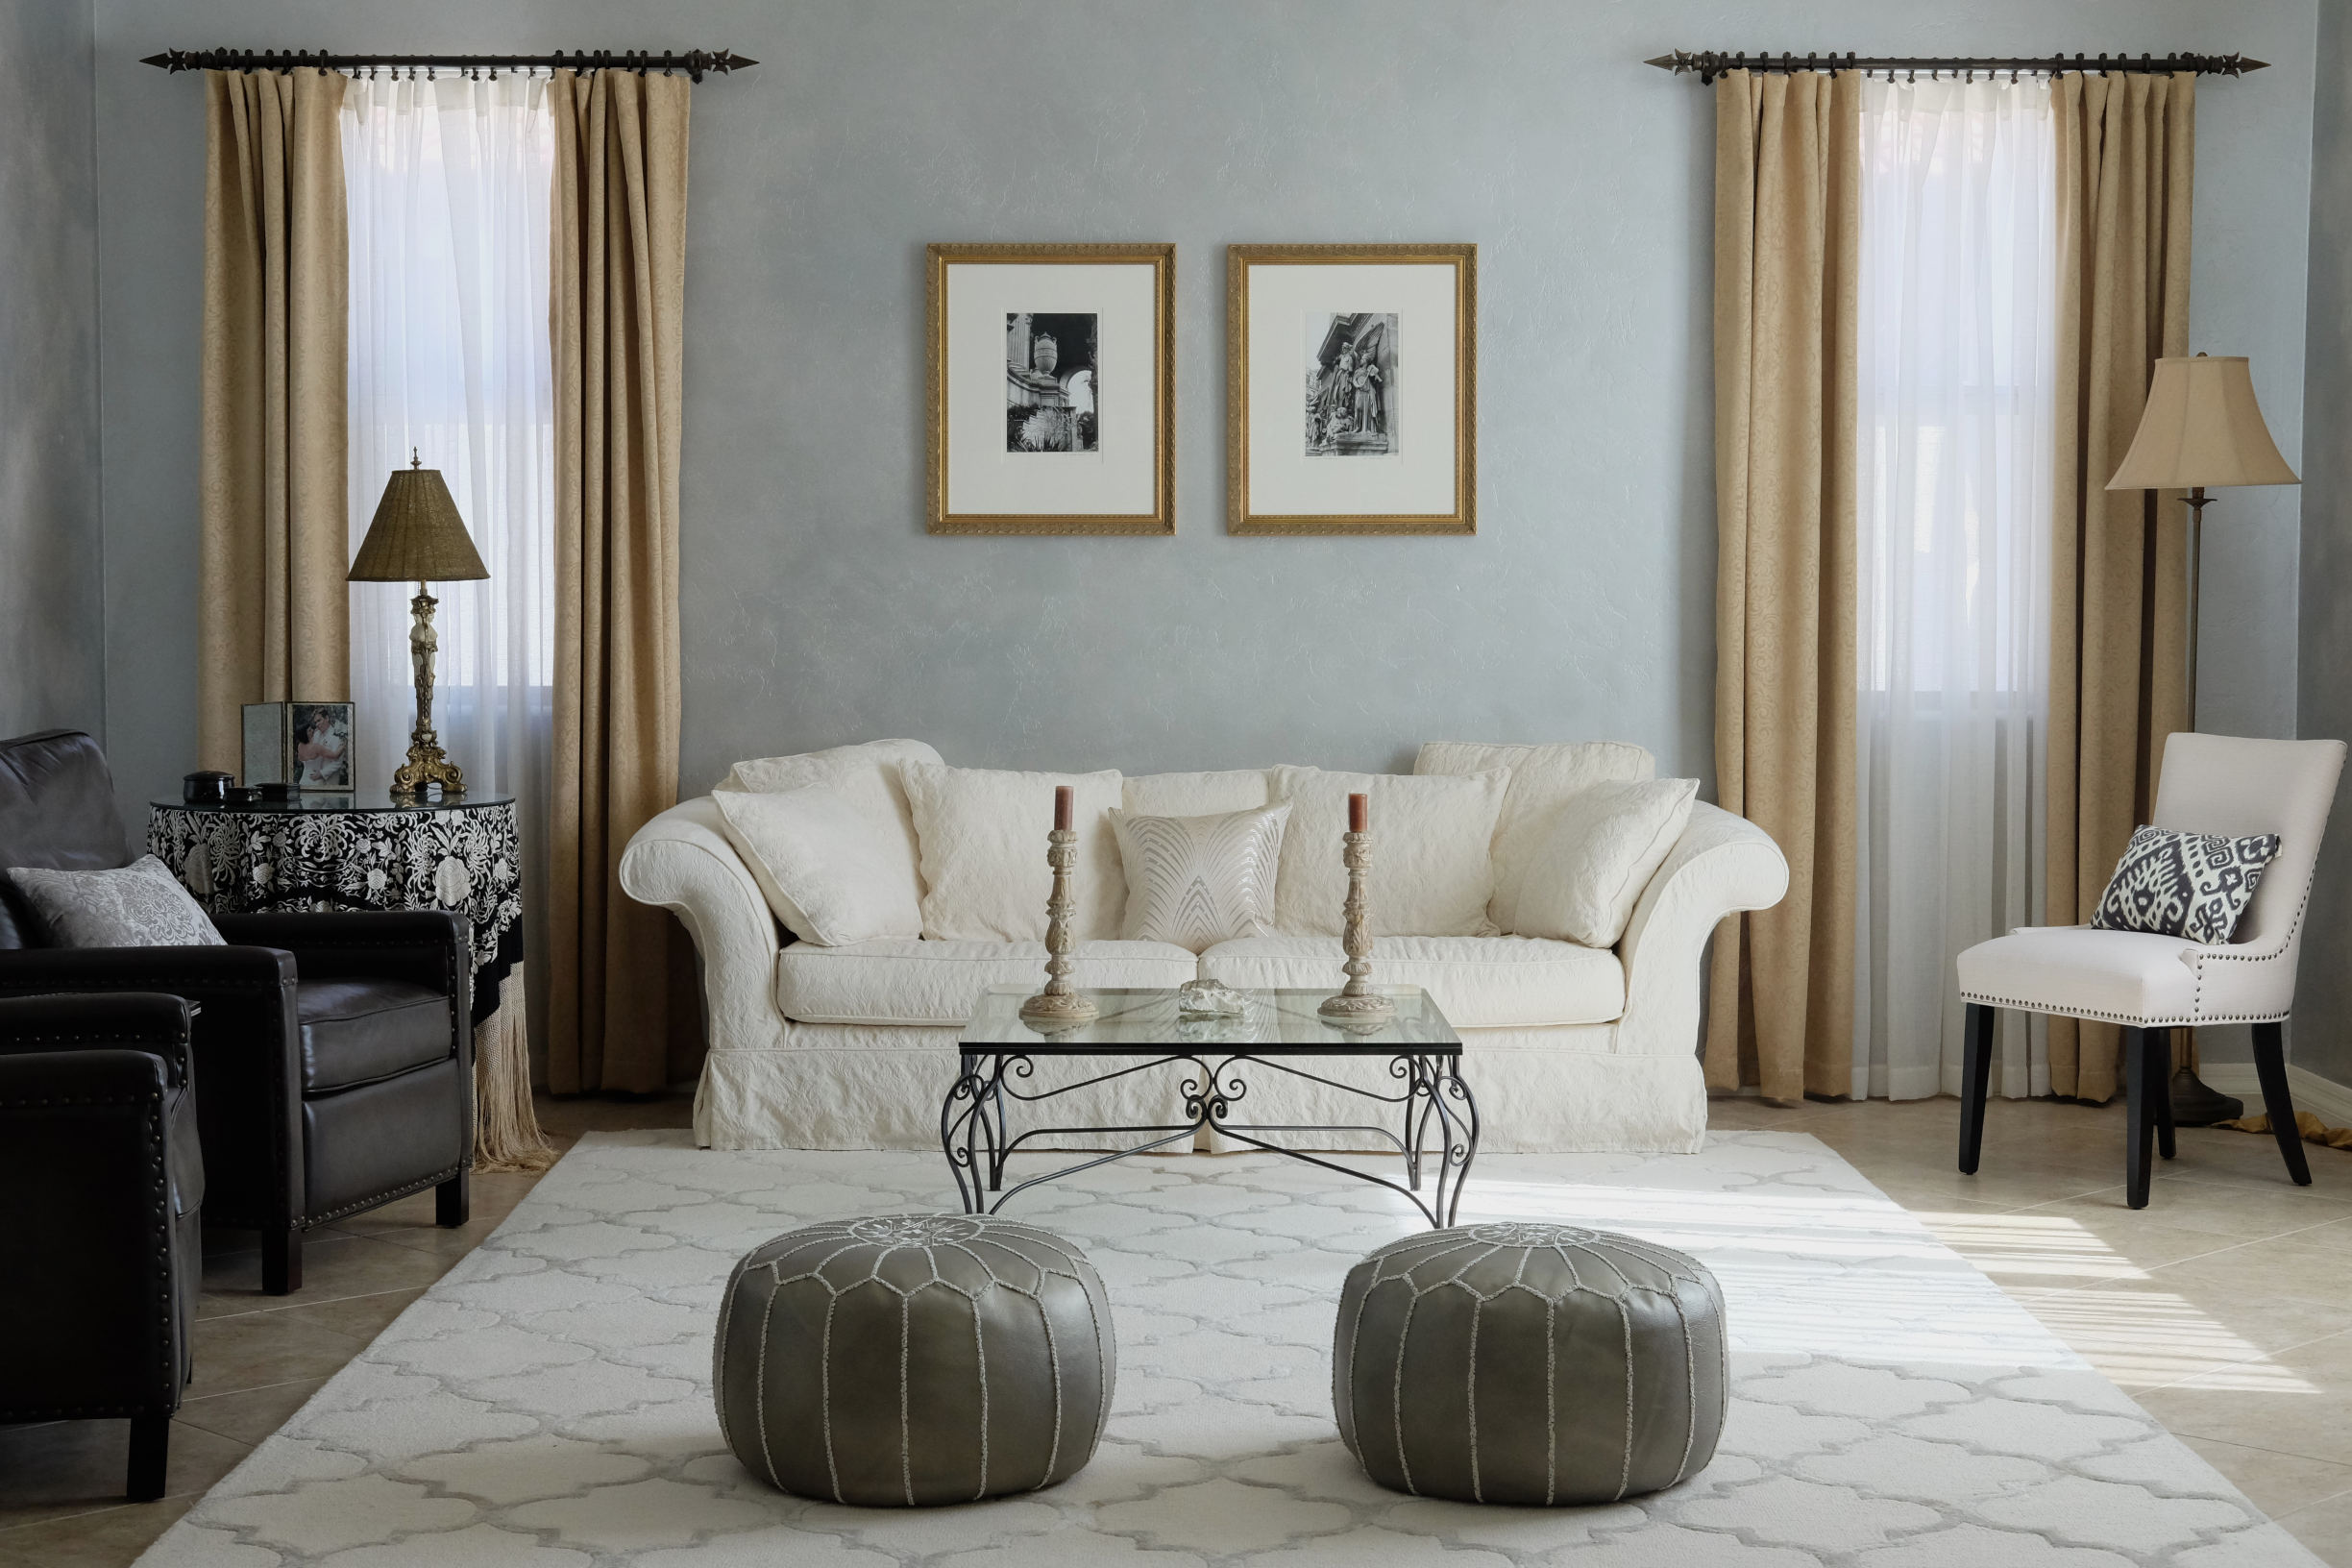 Tucson interior design featuring Old Hollywood glamour style living room with Moroccan poufs, arabesque area rug, and Spanish Colonial wrought iron table